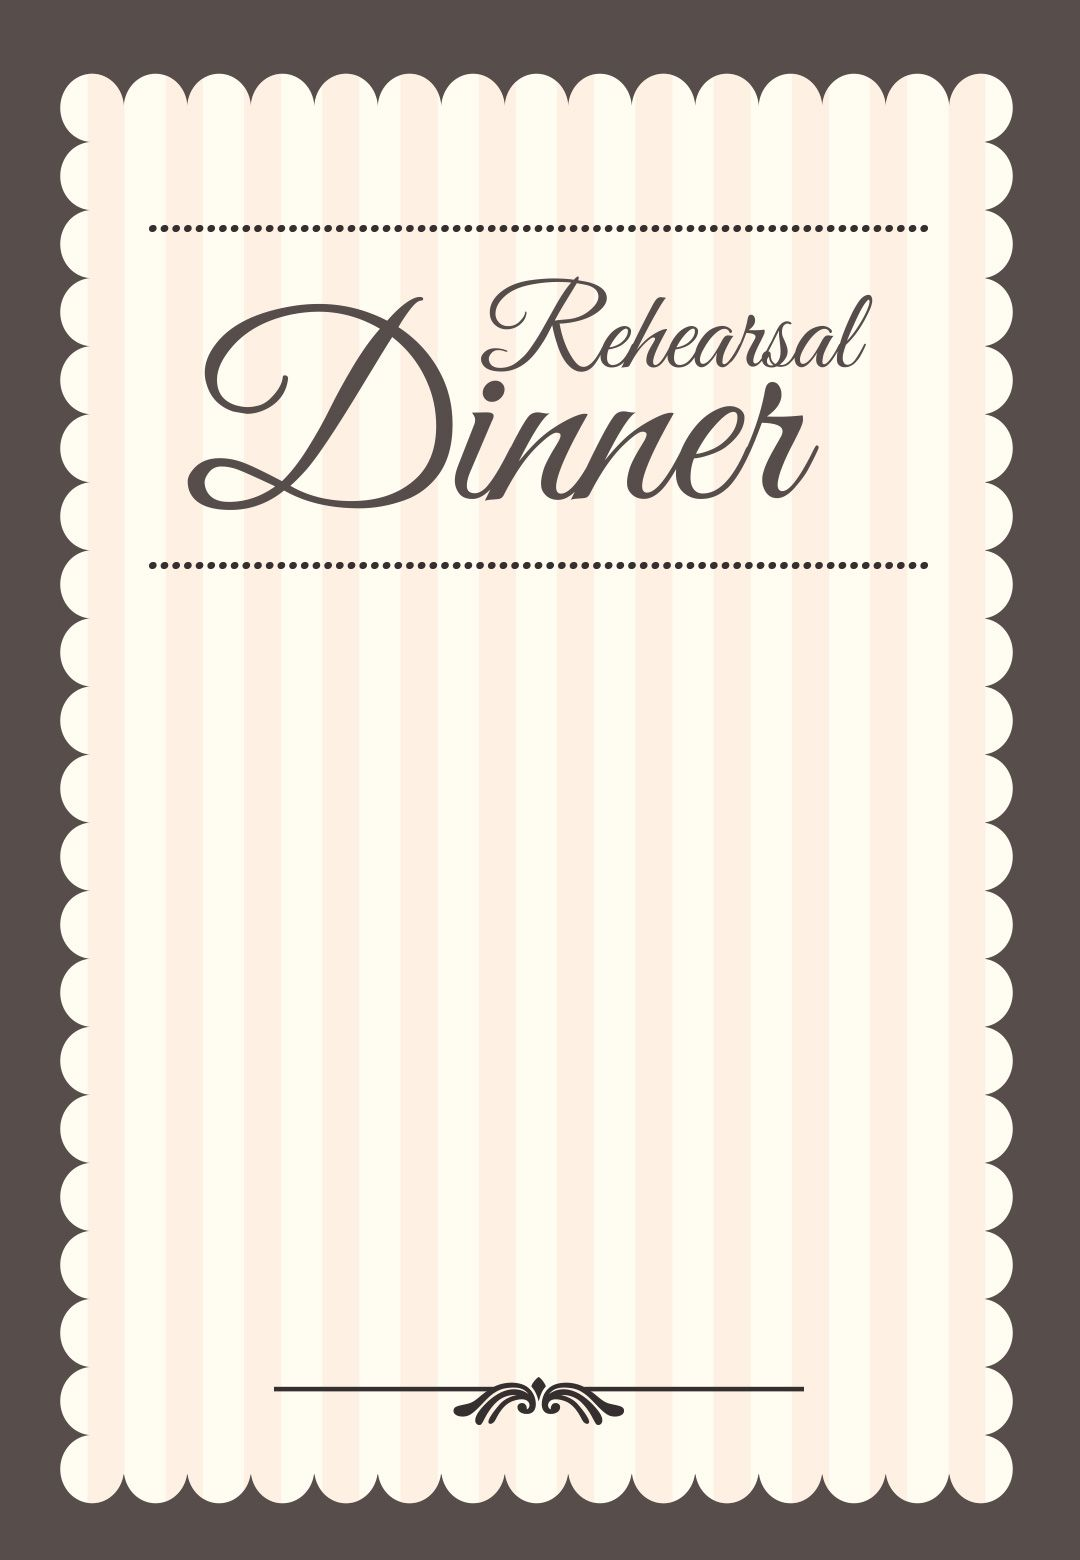 stamped rehearsal dinner free printable rehearsal dinner party invitation template greetings. Black Bedroom Furniture Sets. Home Design Ideas